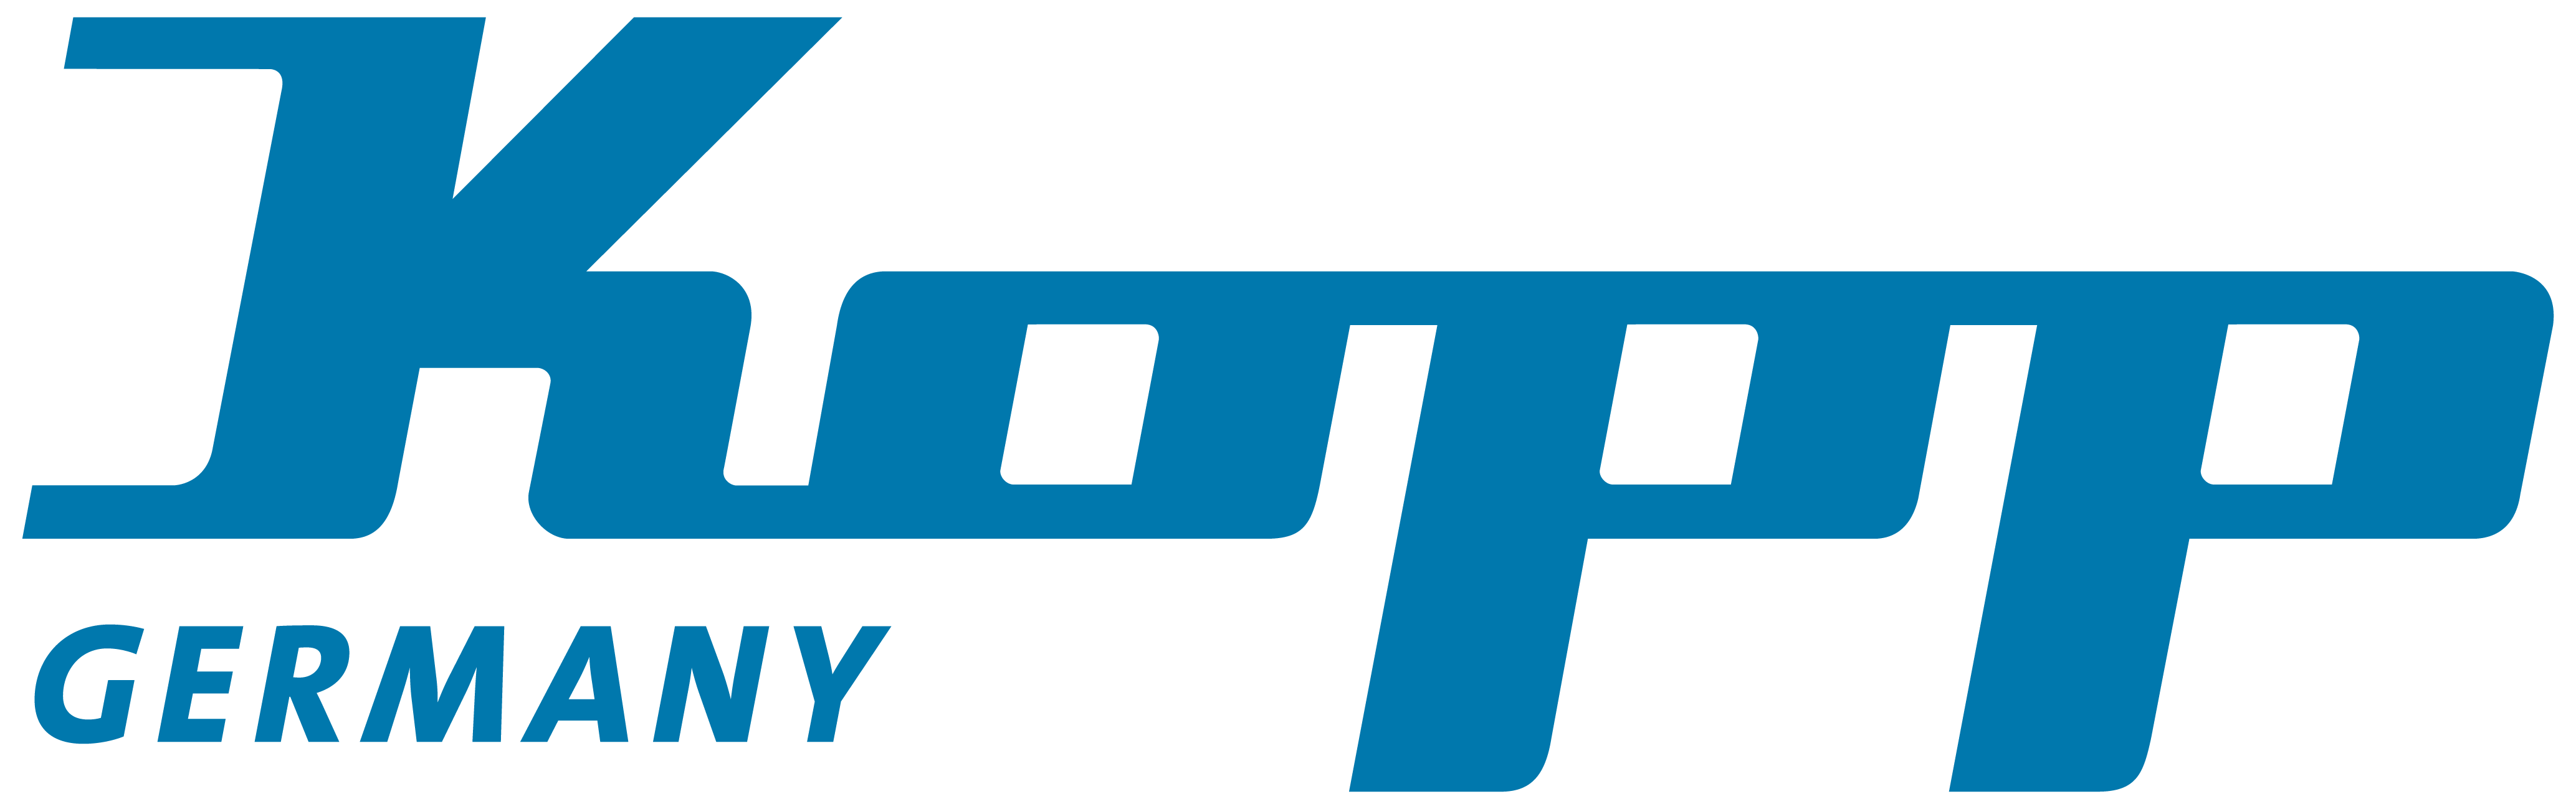 Kopp-Germany-Logo